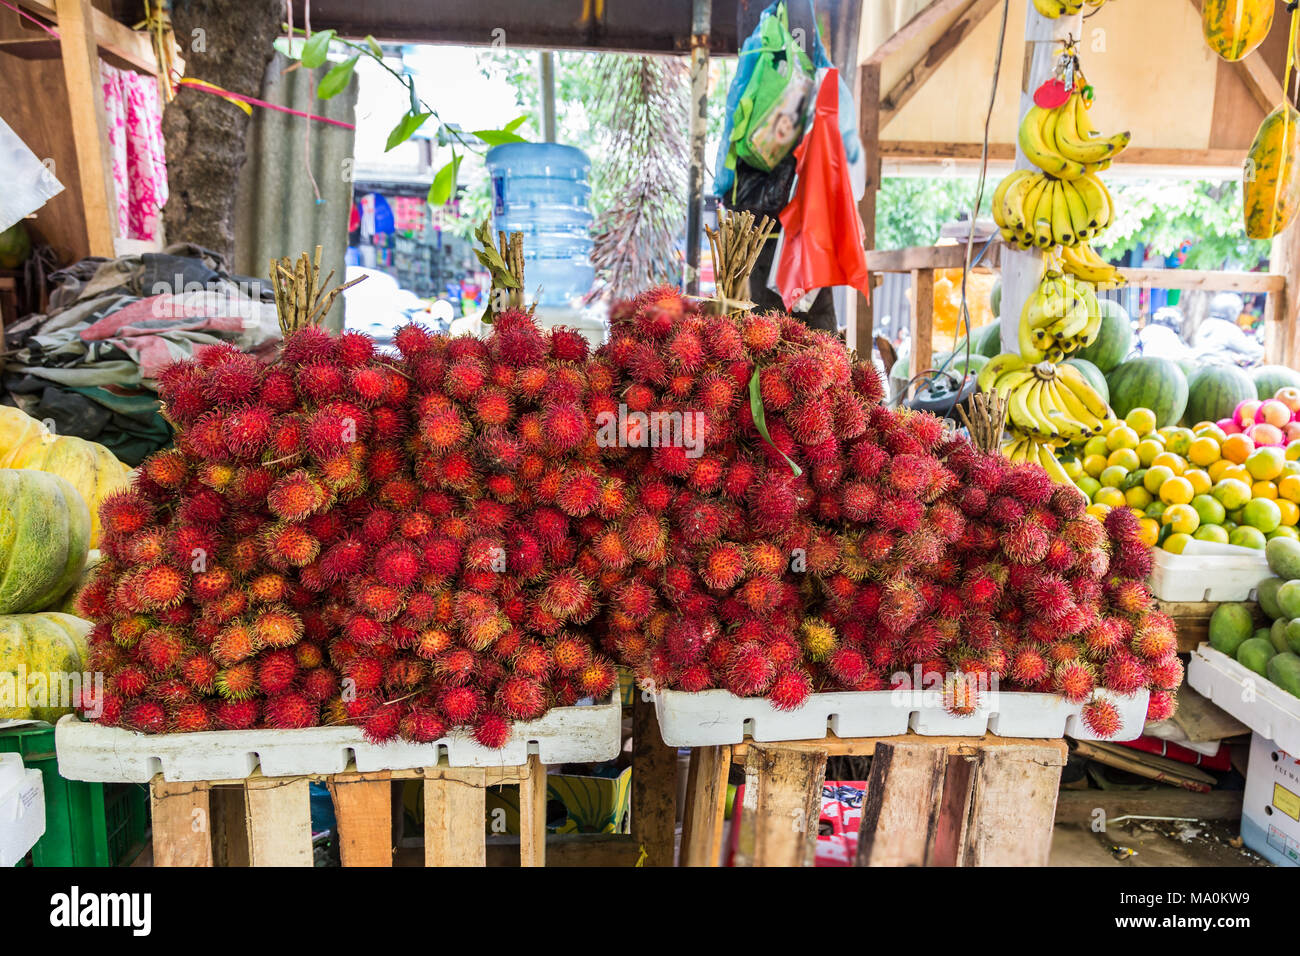 Rambutan or red hairy lychee fruit Stock Photo